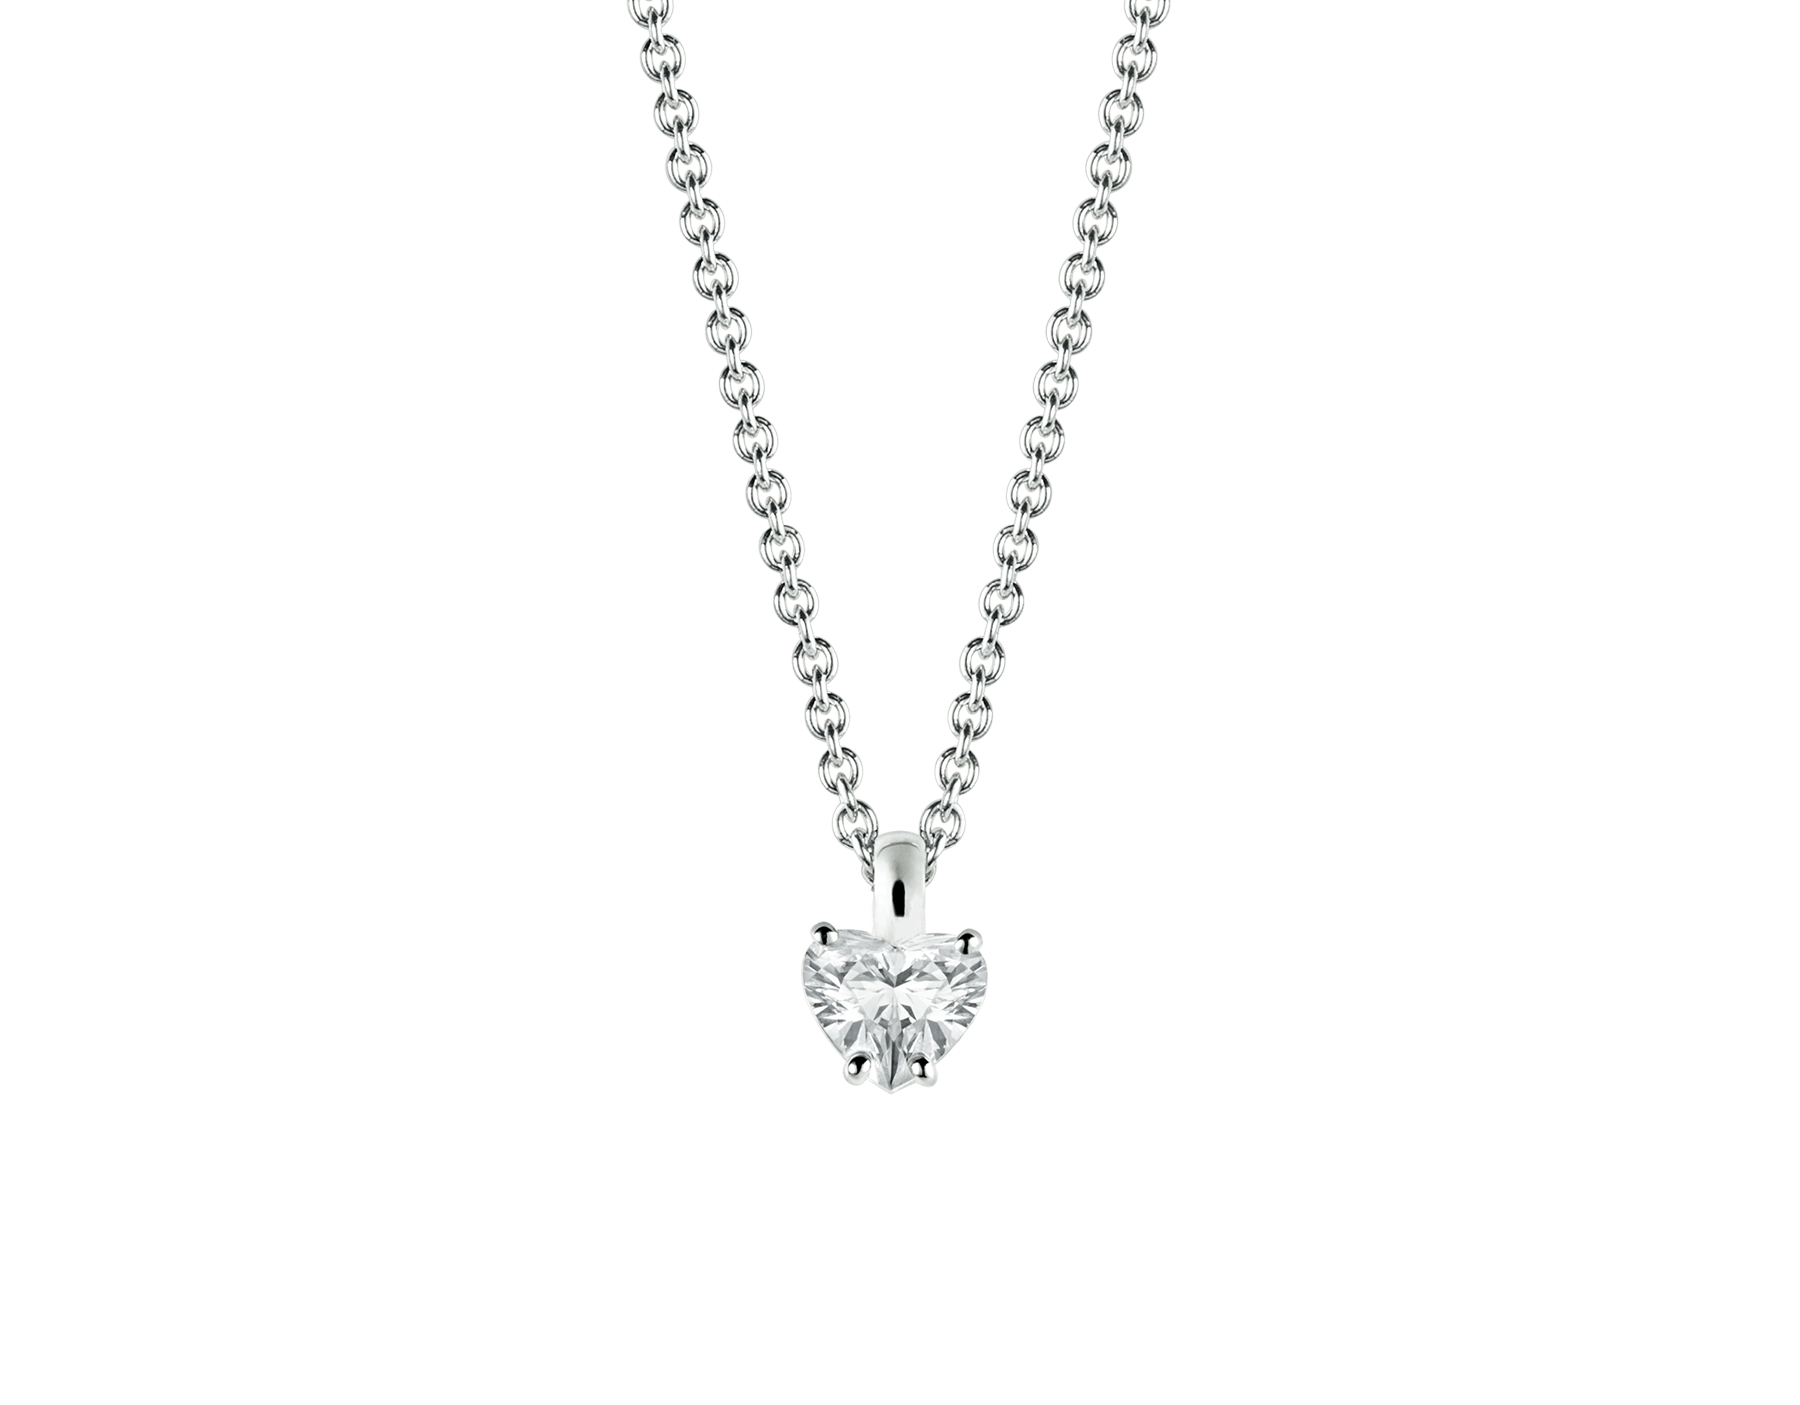 Griffe 18 kt white gold pendant with heart cut diamond and 18 kt white gold chain 338204 image 1